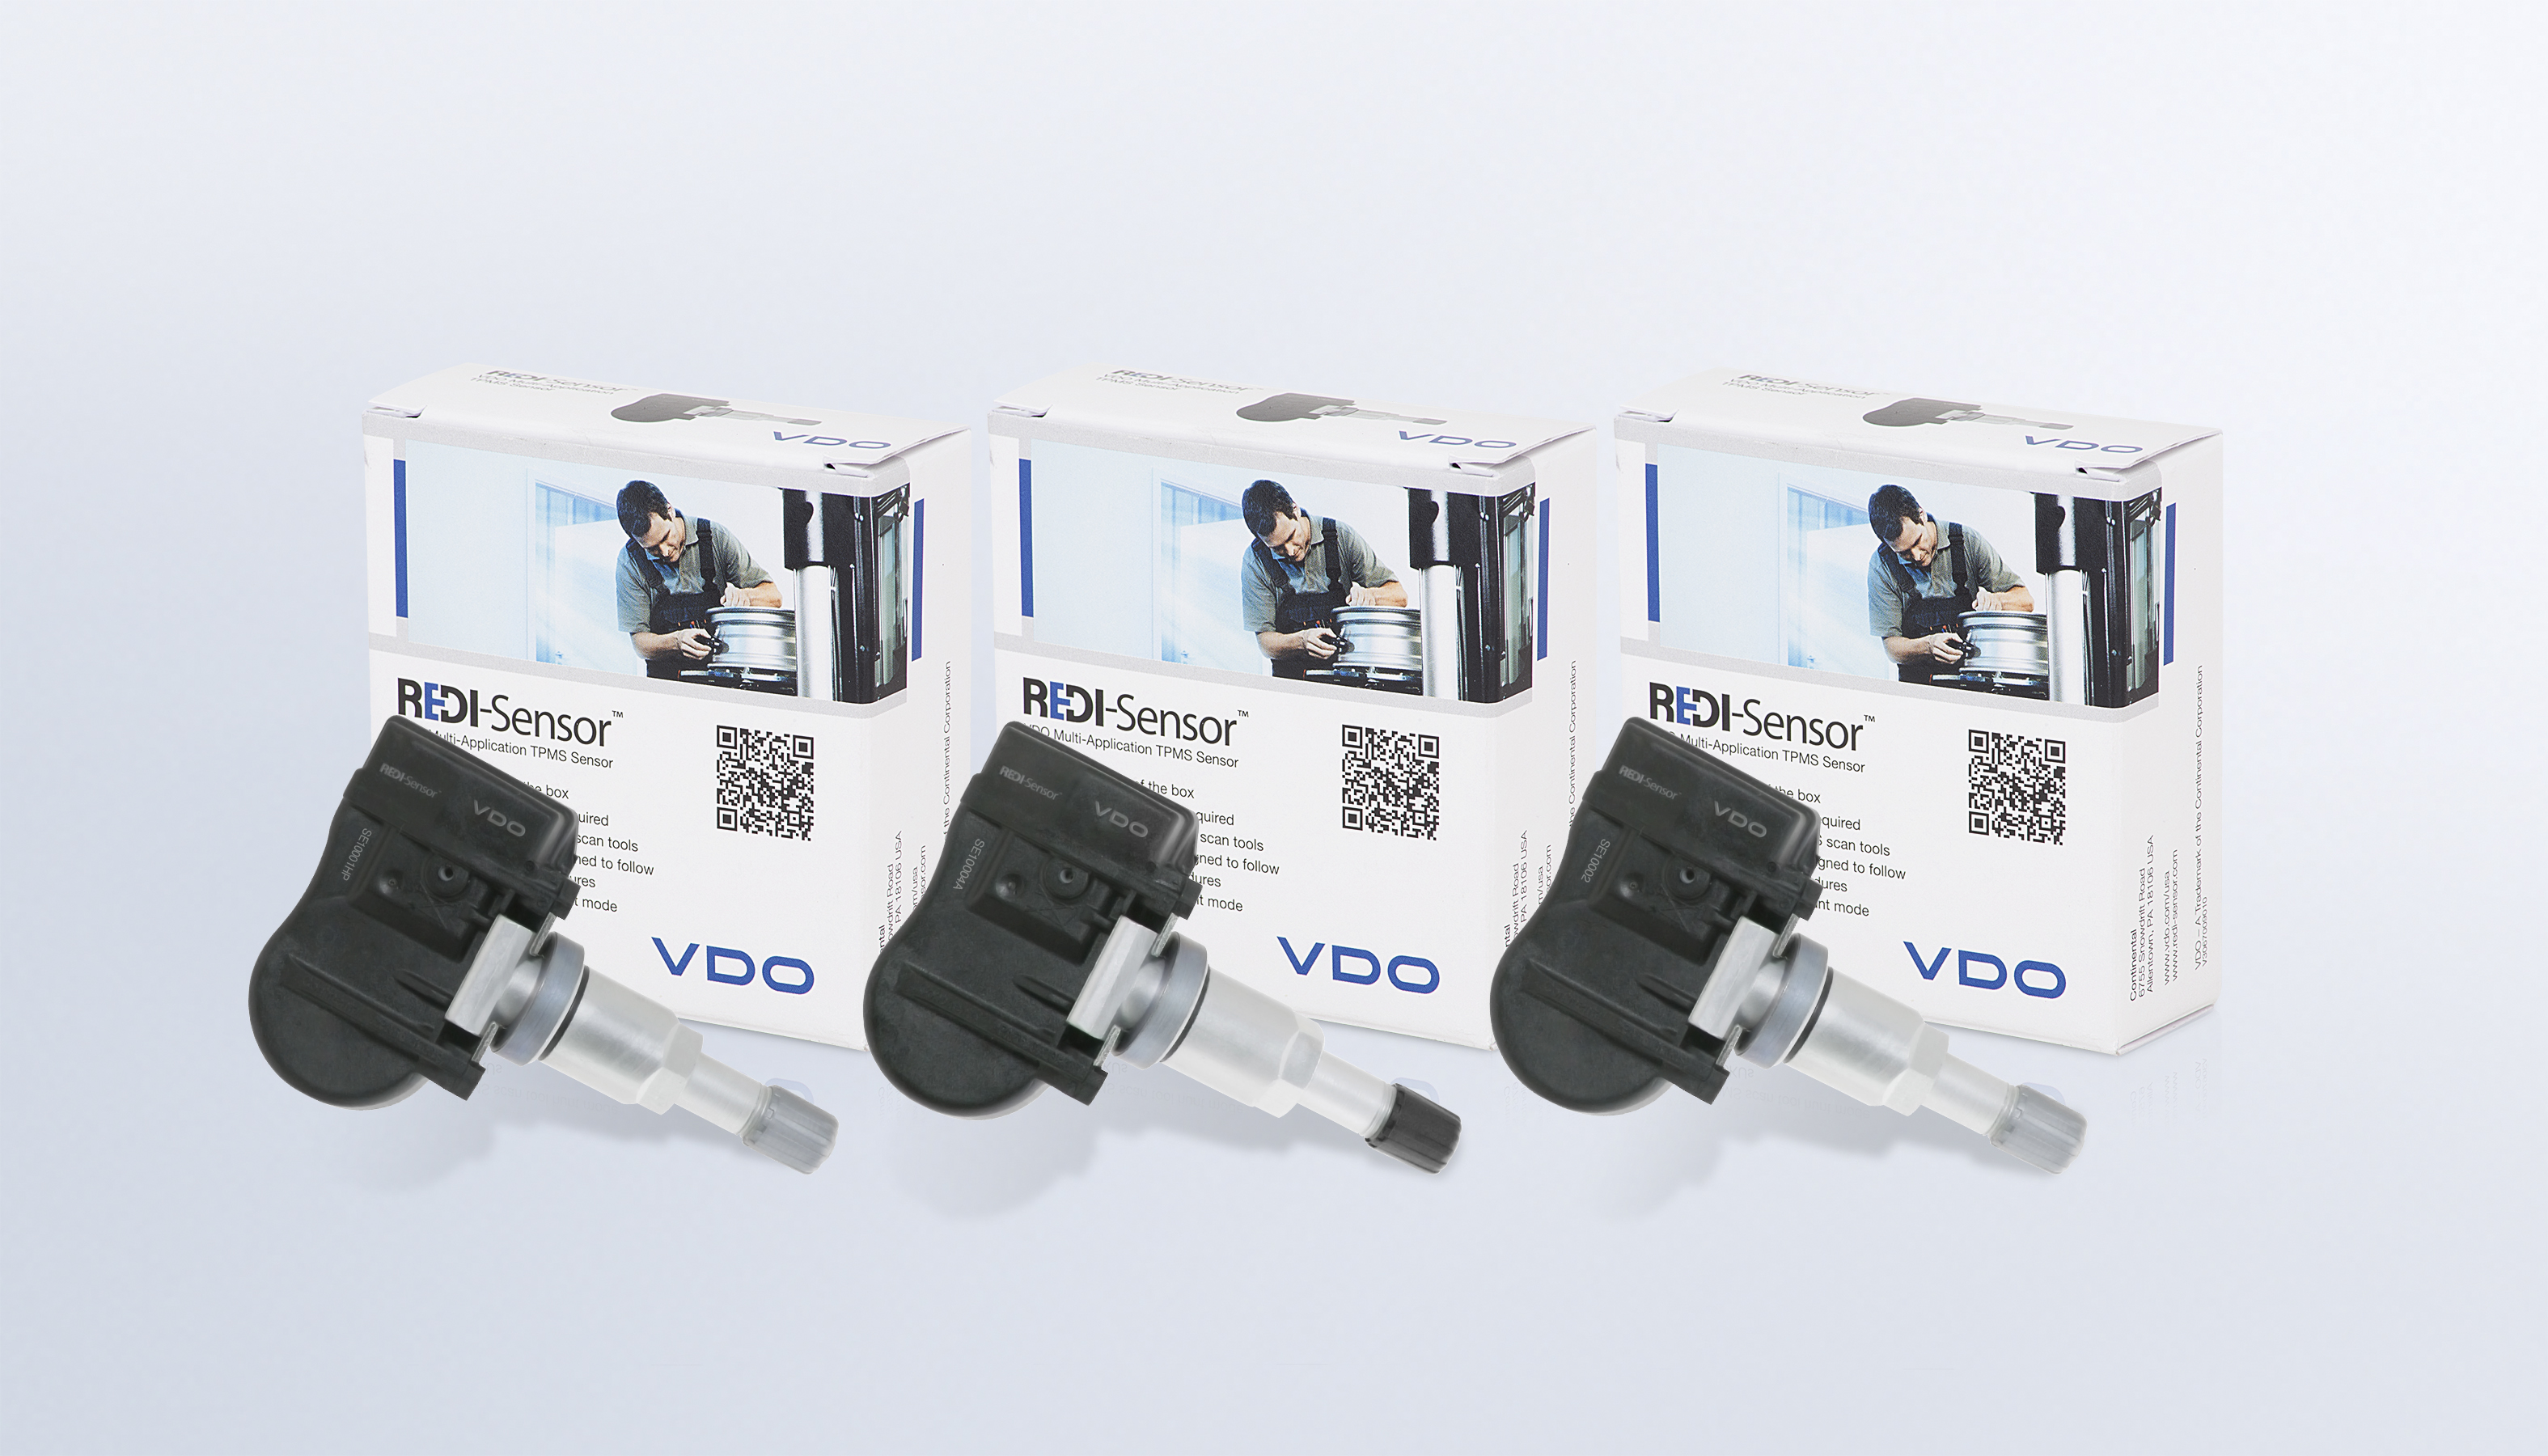 VDO REDI-Sensor training video covers extra-step programming